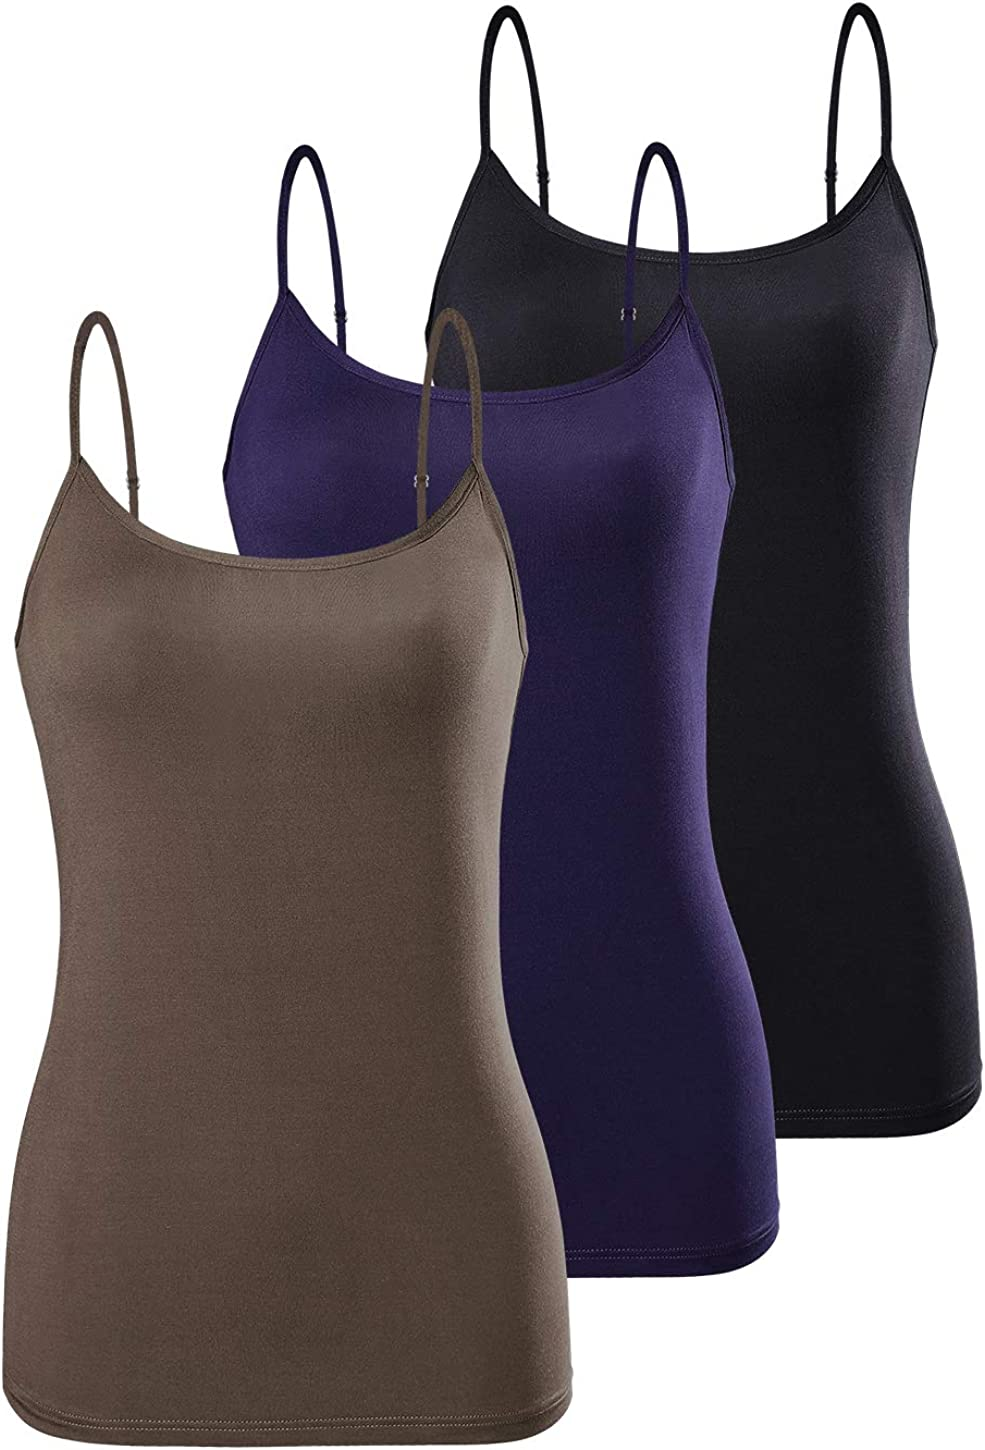 AMVELOP Adjustable Womens Camisole Spaghetti Strap Tank Top Camis